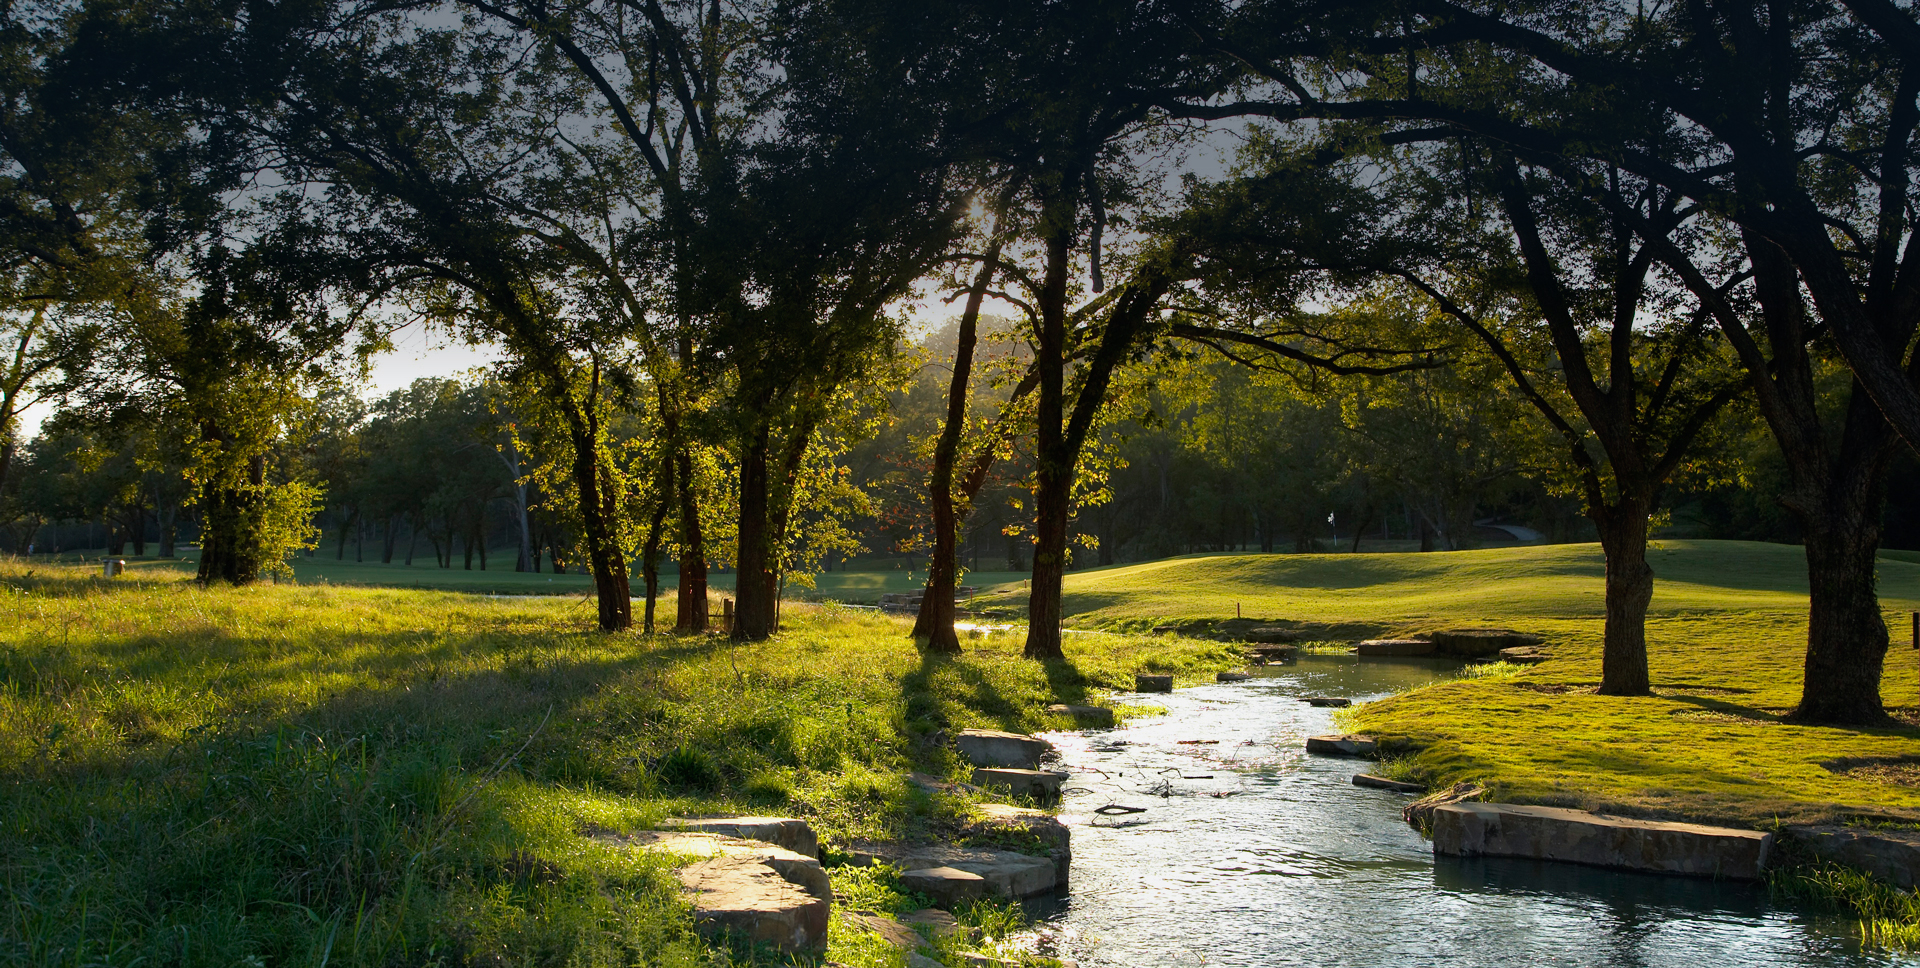 18 Holes of Texas Wilderness